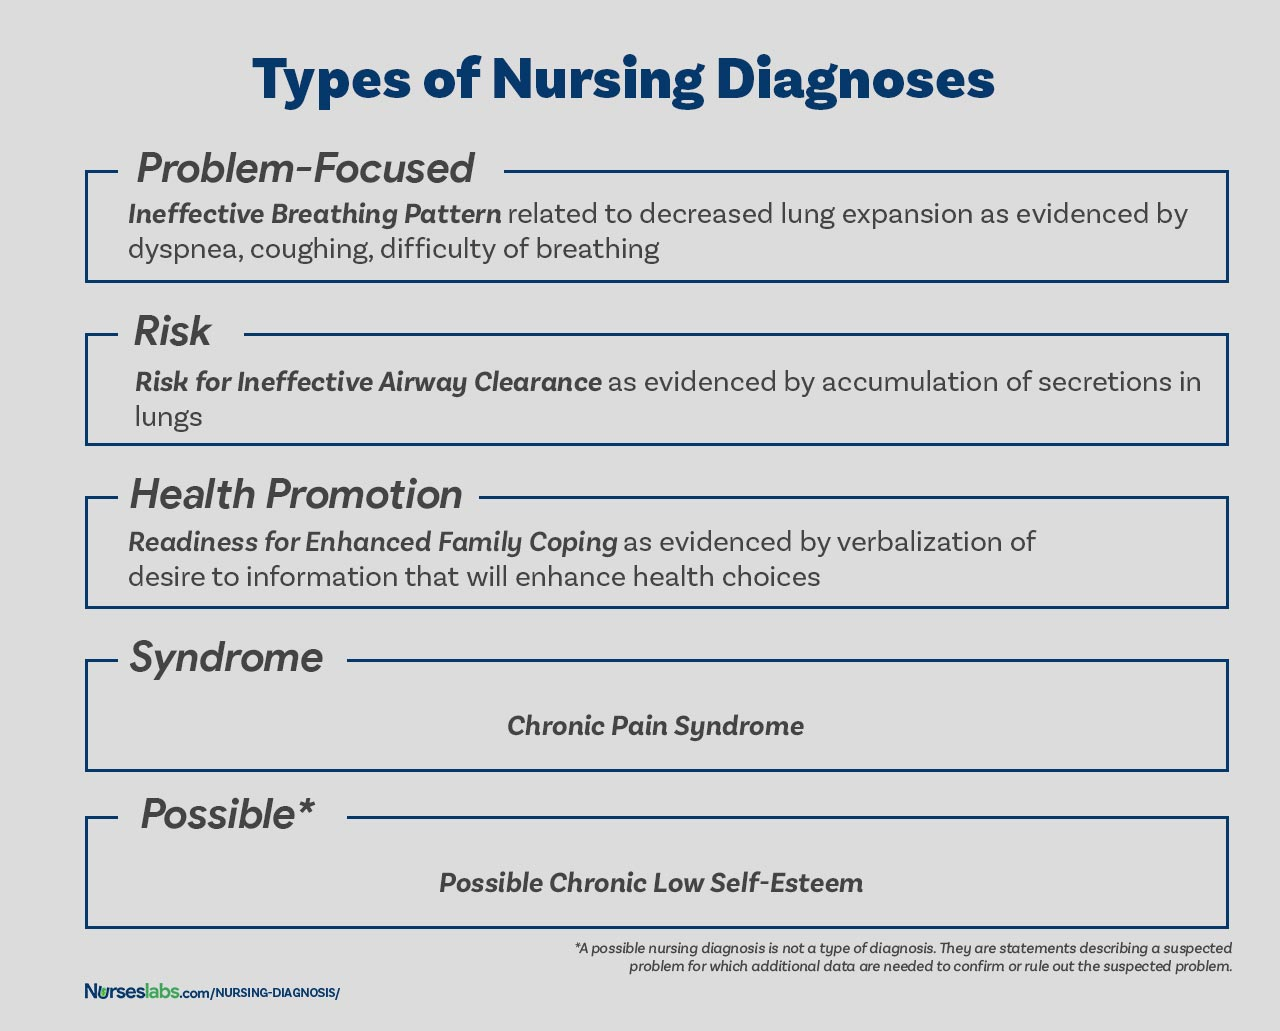 The four types of nursing diagnosis are Actual (Problem-Focused), Risk, Health Promotion, and Syndrome.